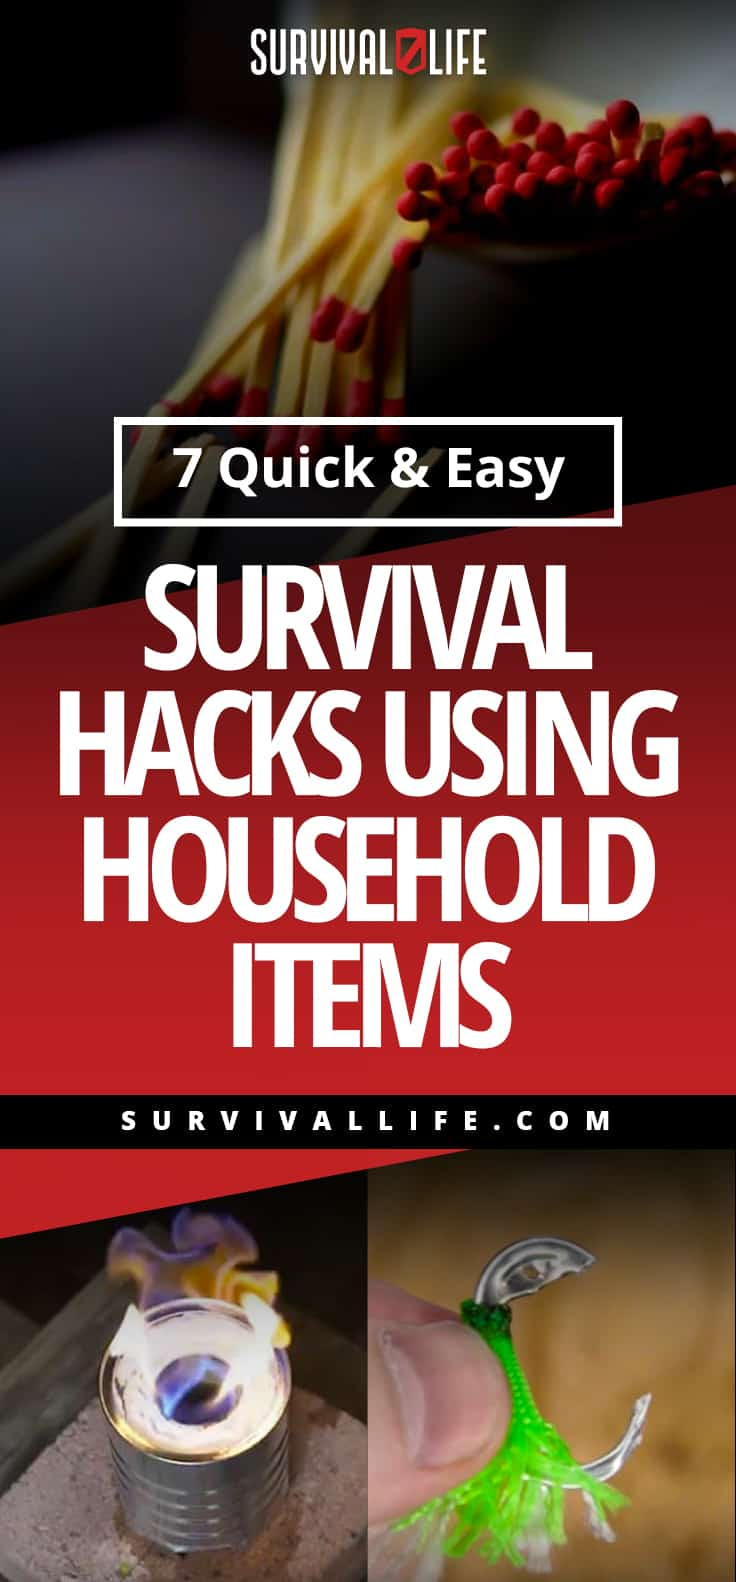 Quick & Easy Survival Hacks Using Household Items | https://survivallife.com/household-survival-hacks/